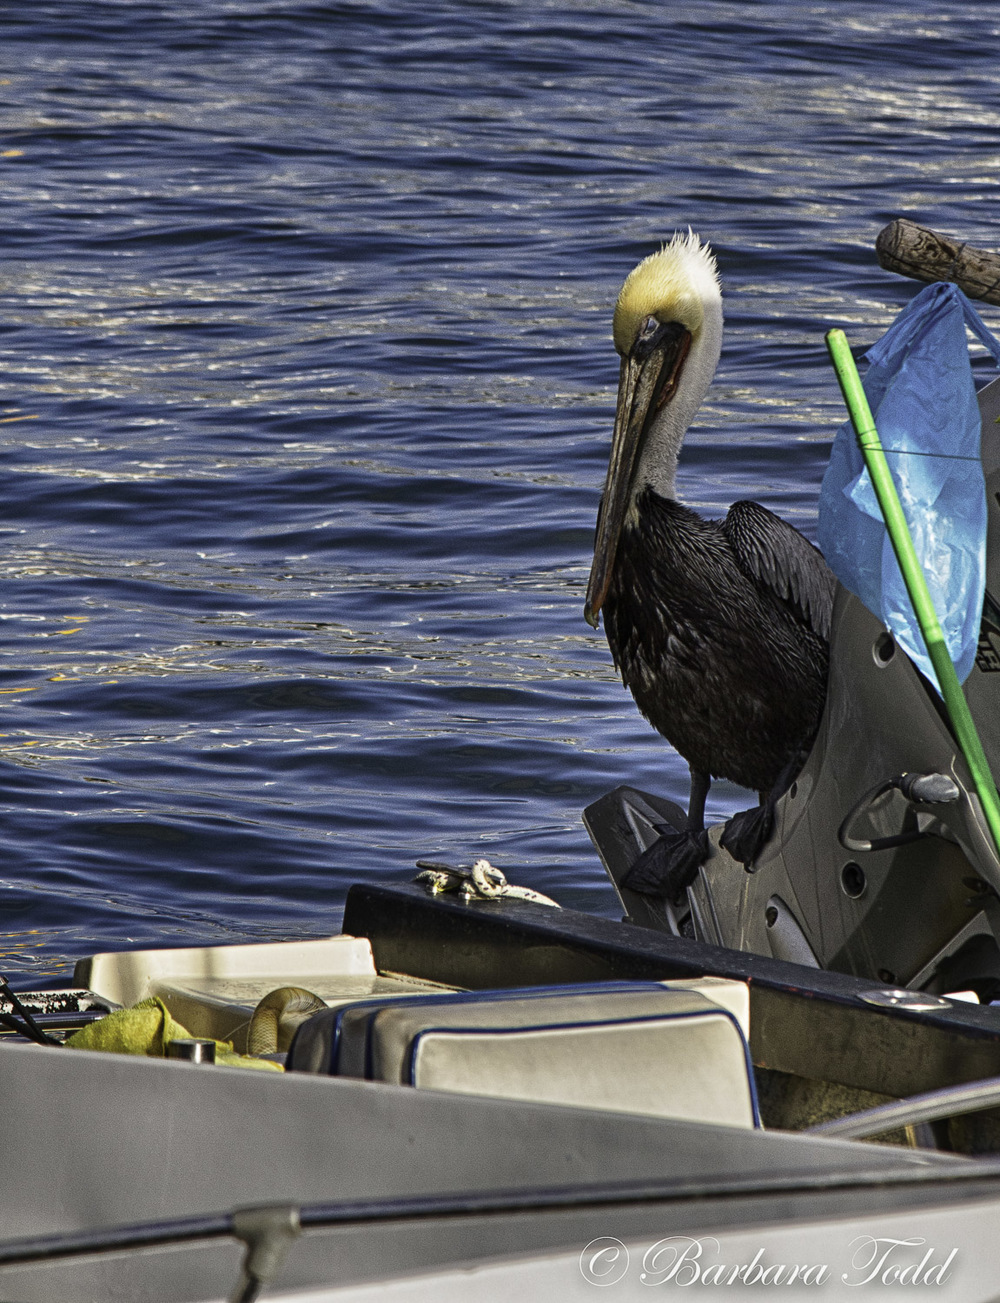 A Cabo pelican. Looks rather sad.